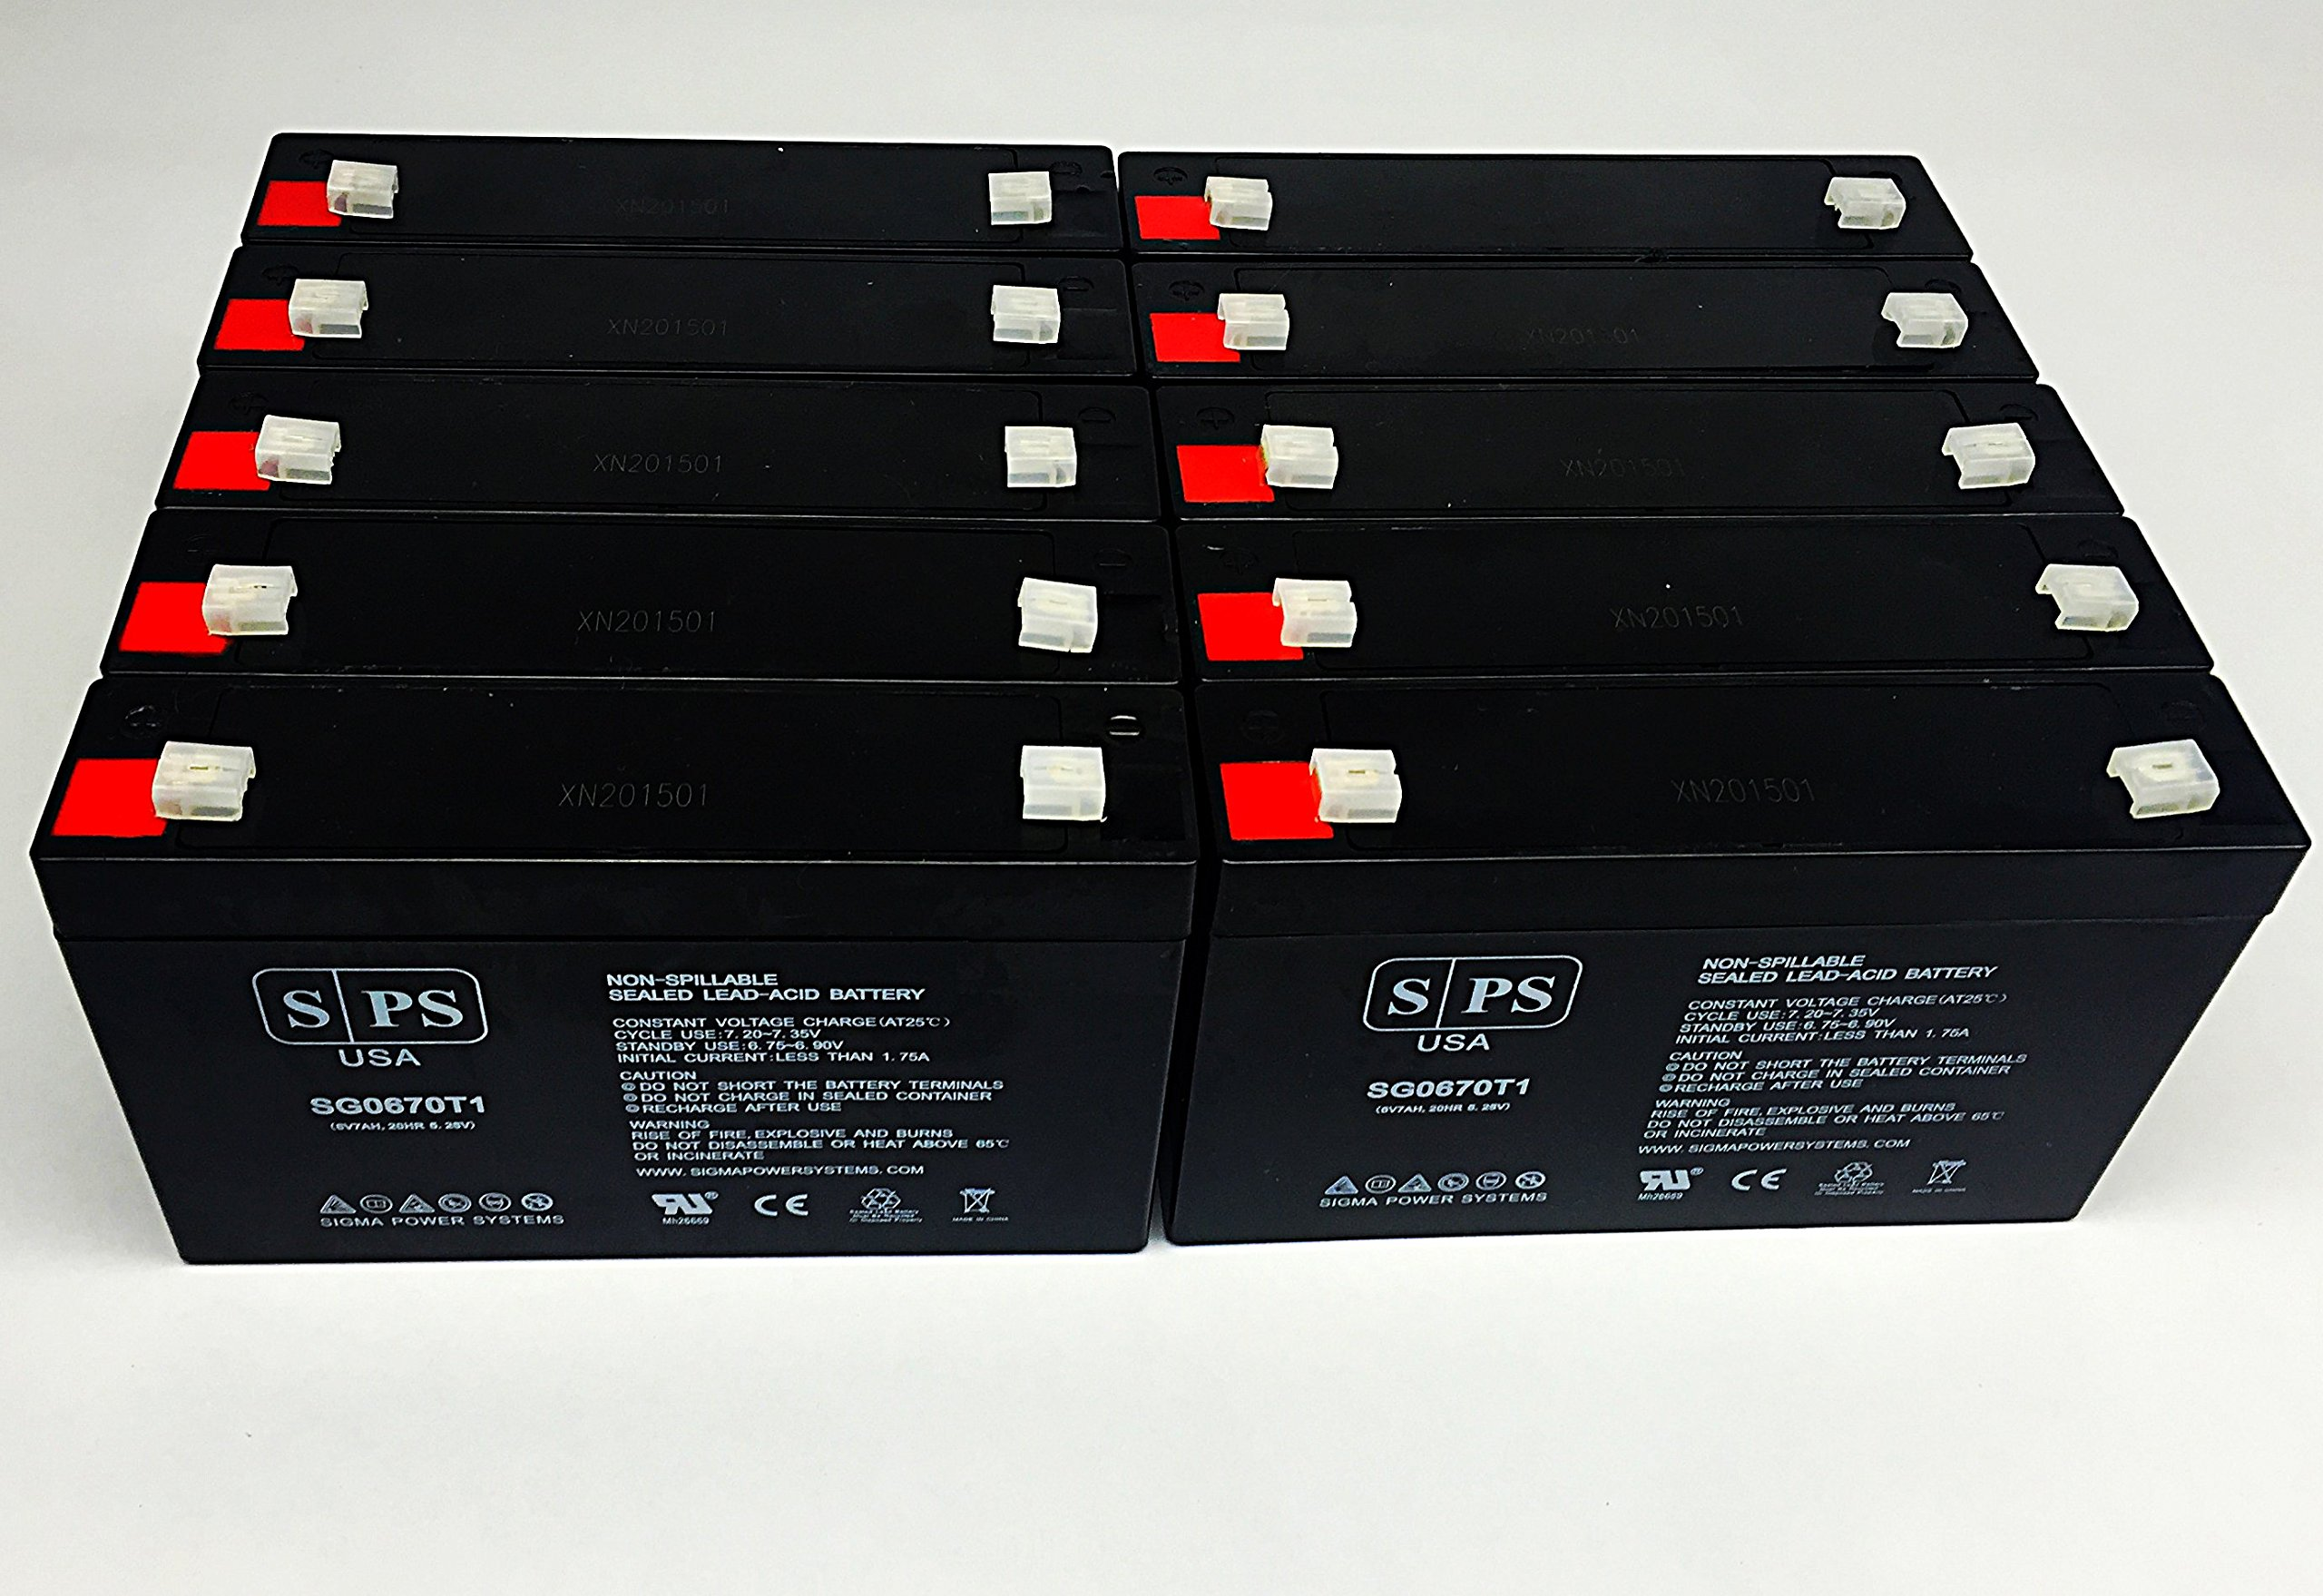 6V 7Ah Replacement Battery for Lithonia ELB-0607 6V 7Ah (Emergency Light Replacement Battery) - SPS Brand (10 Pack)